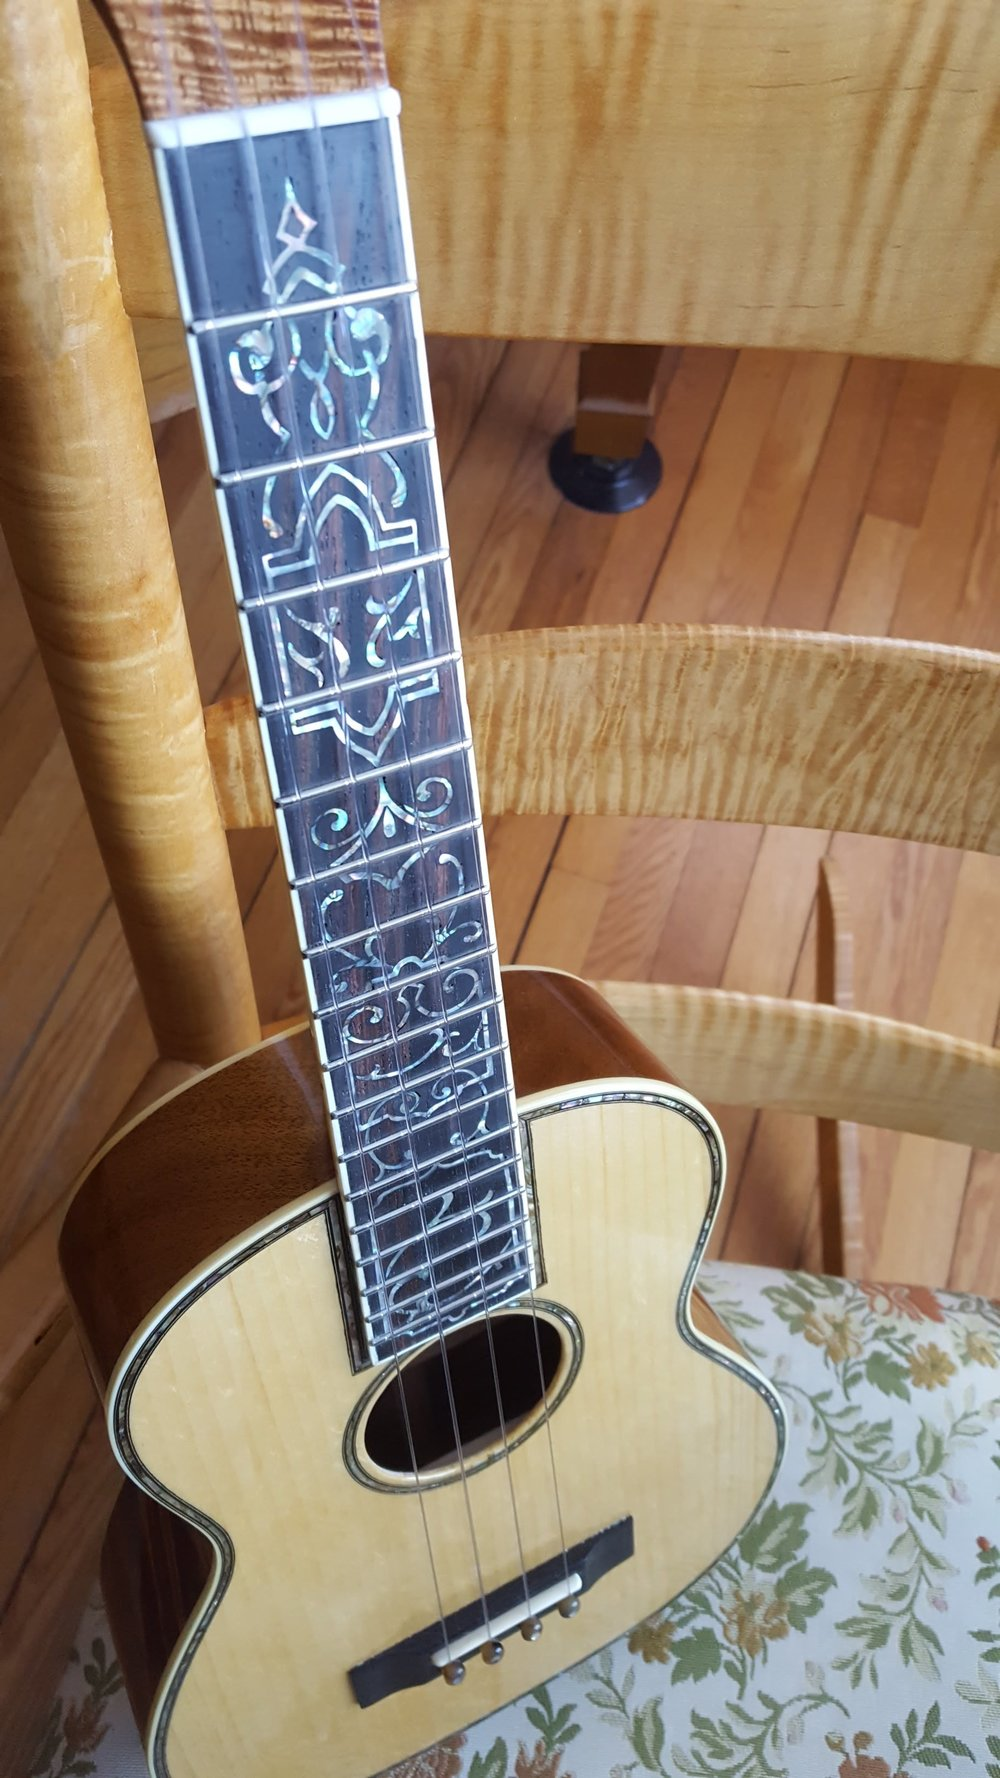 Hand drawn art deco fingerboard design on a koa tenor ukulele.